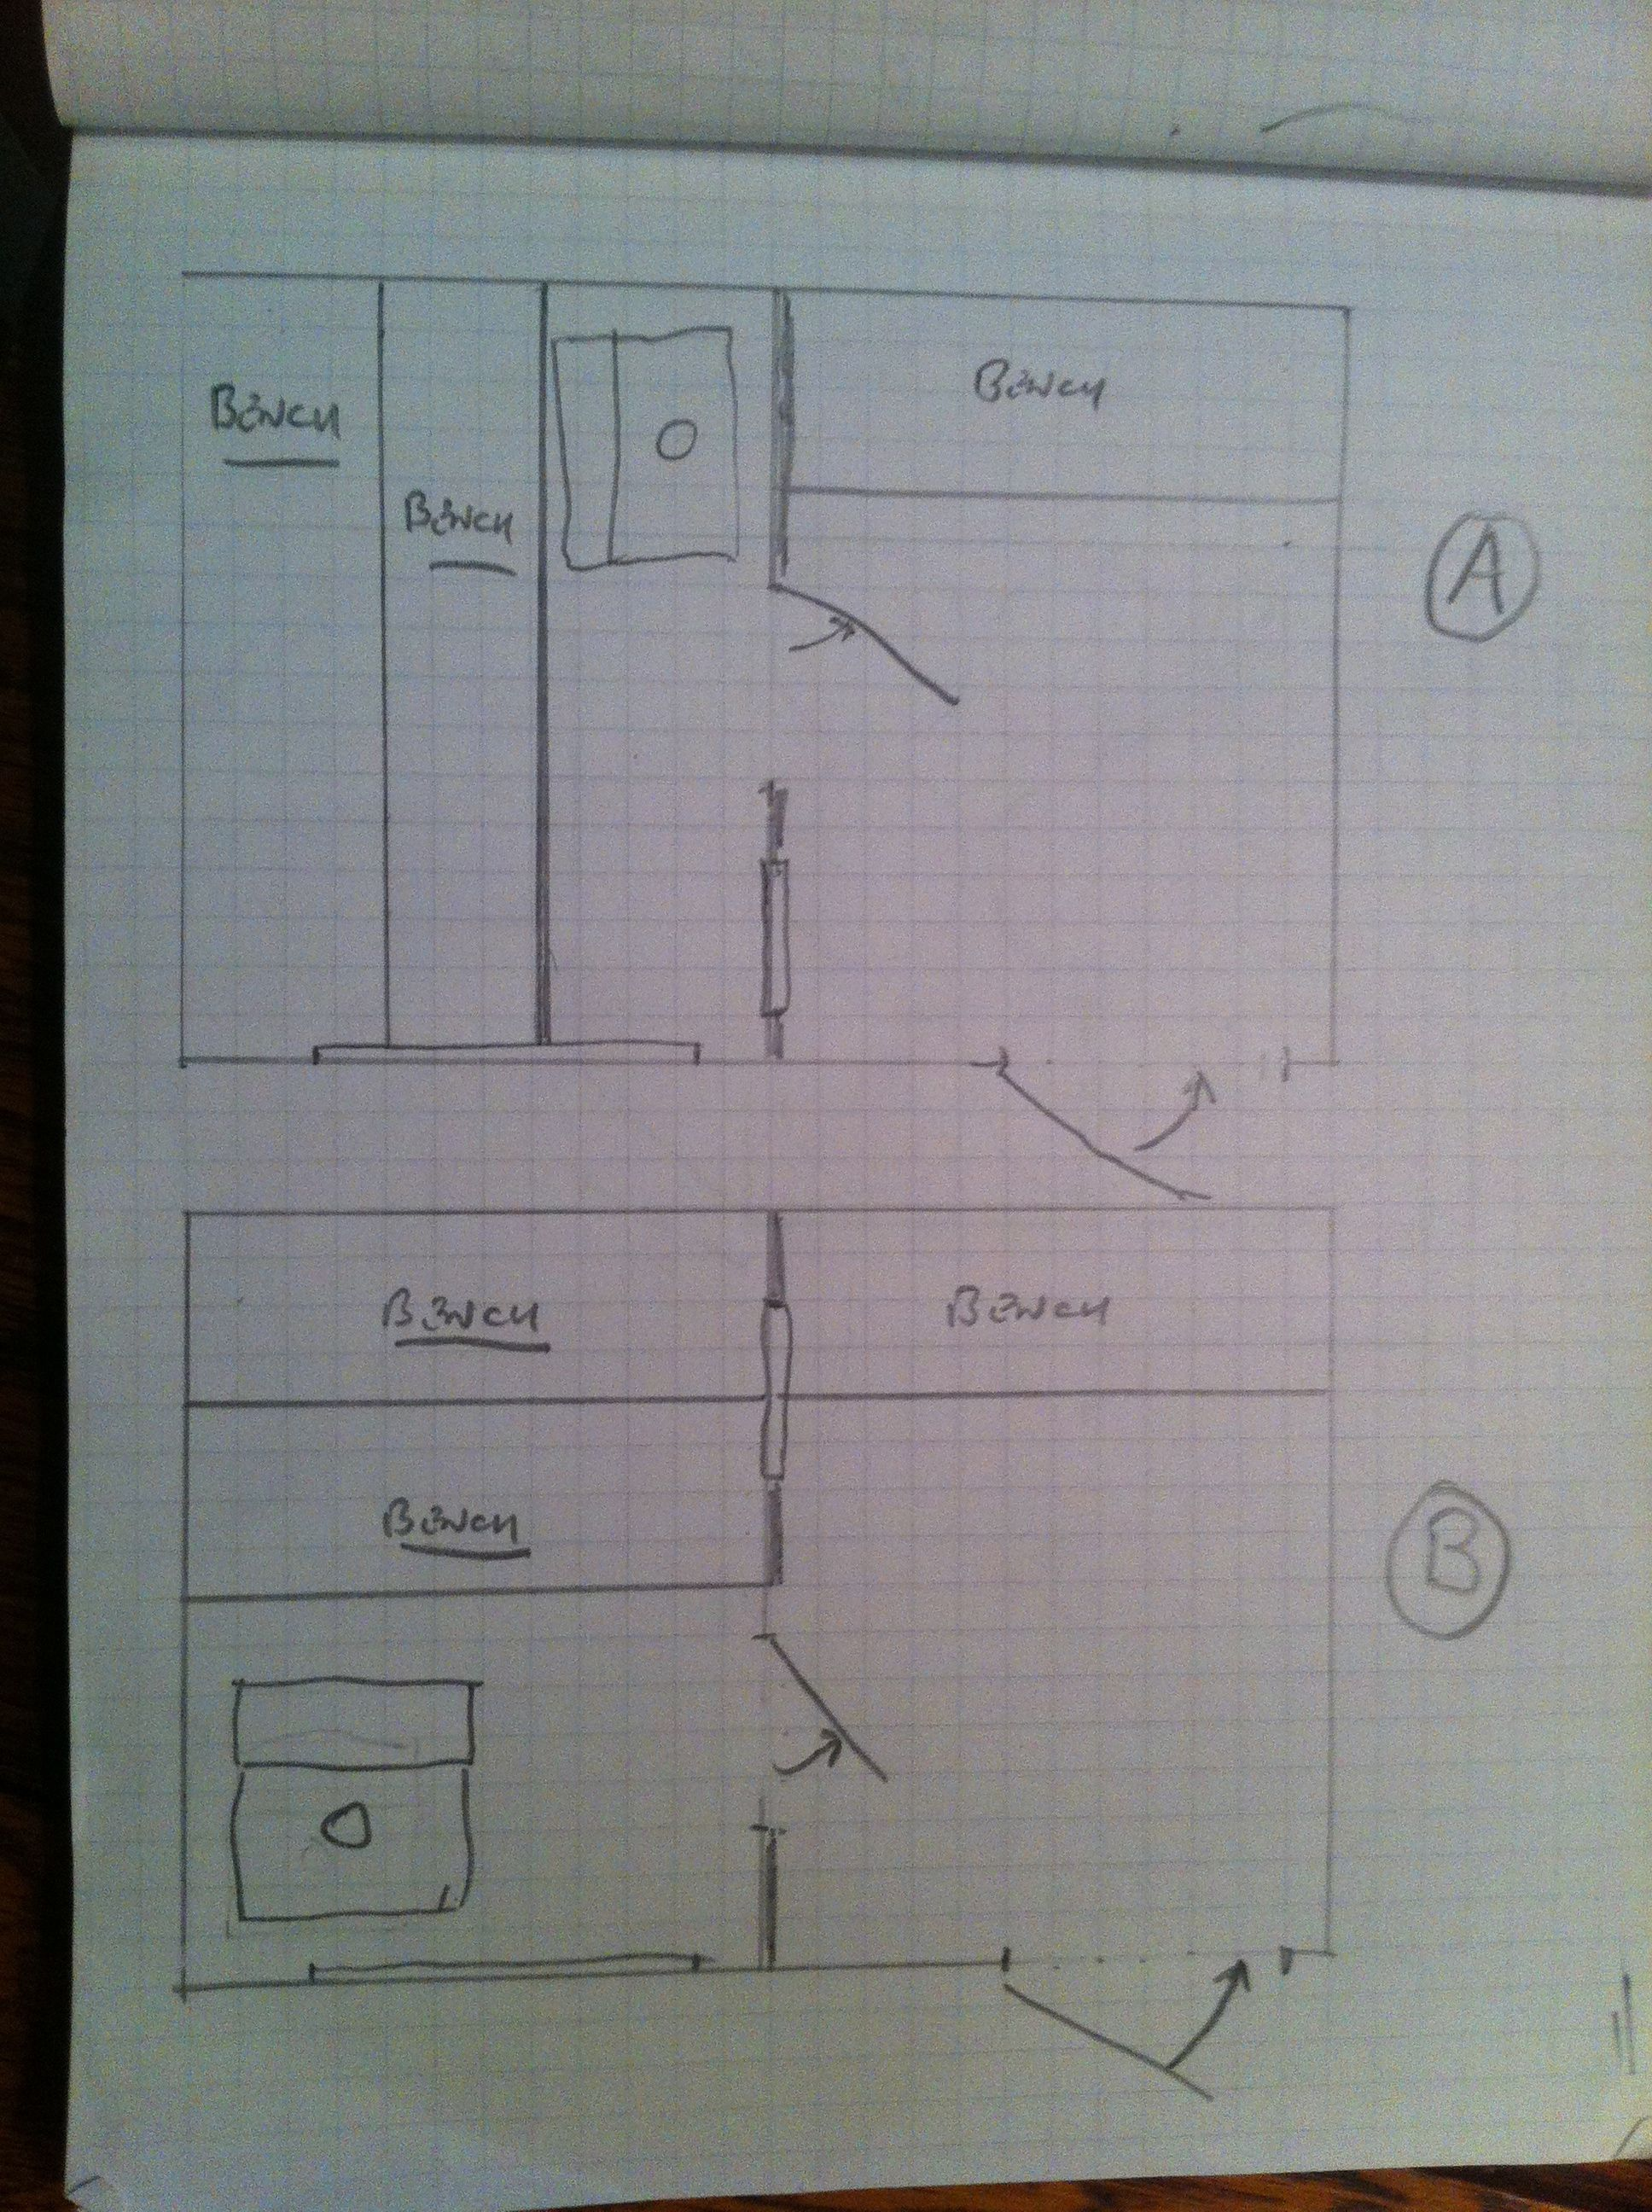 Build your own sauna saunatimes for Sauna floor plans